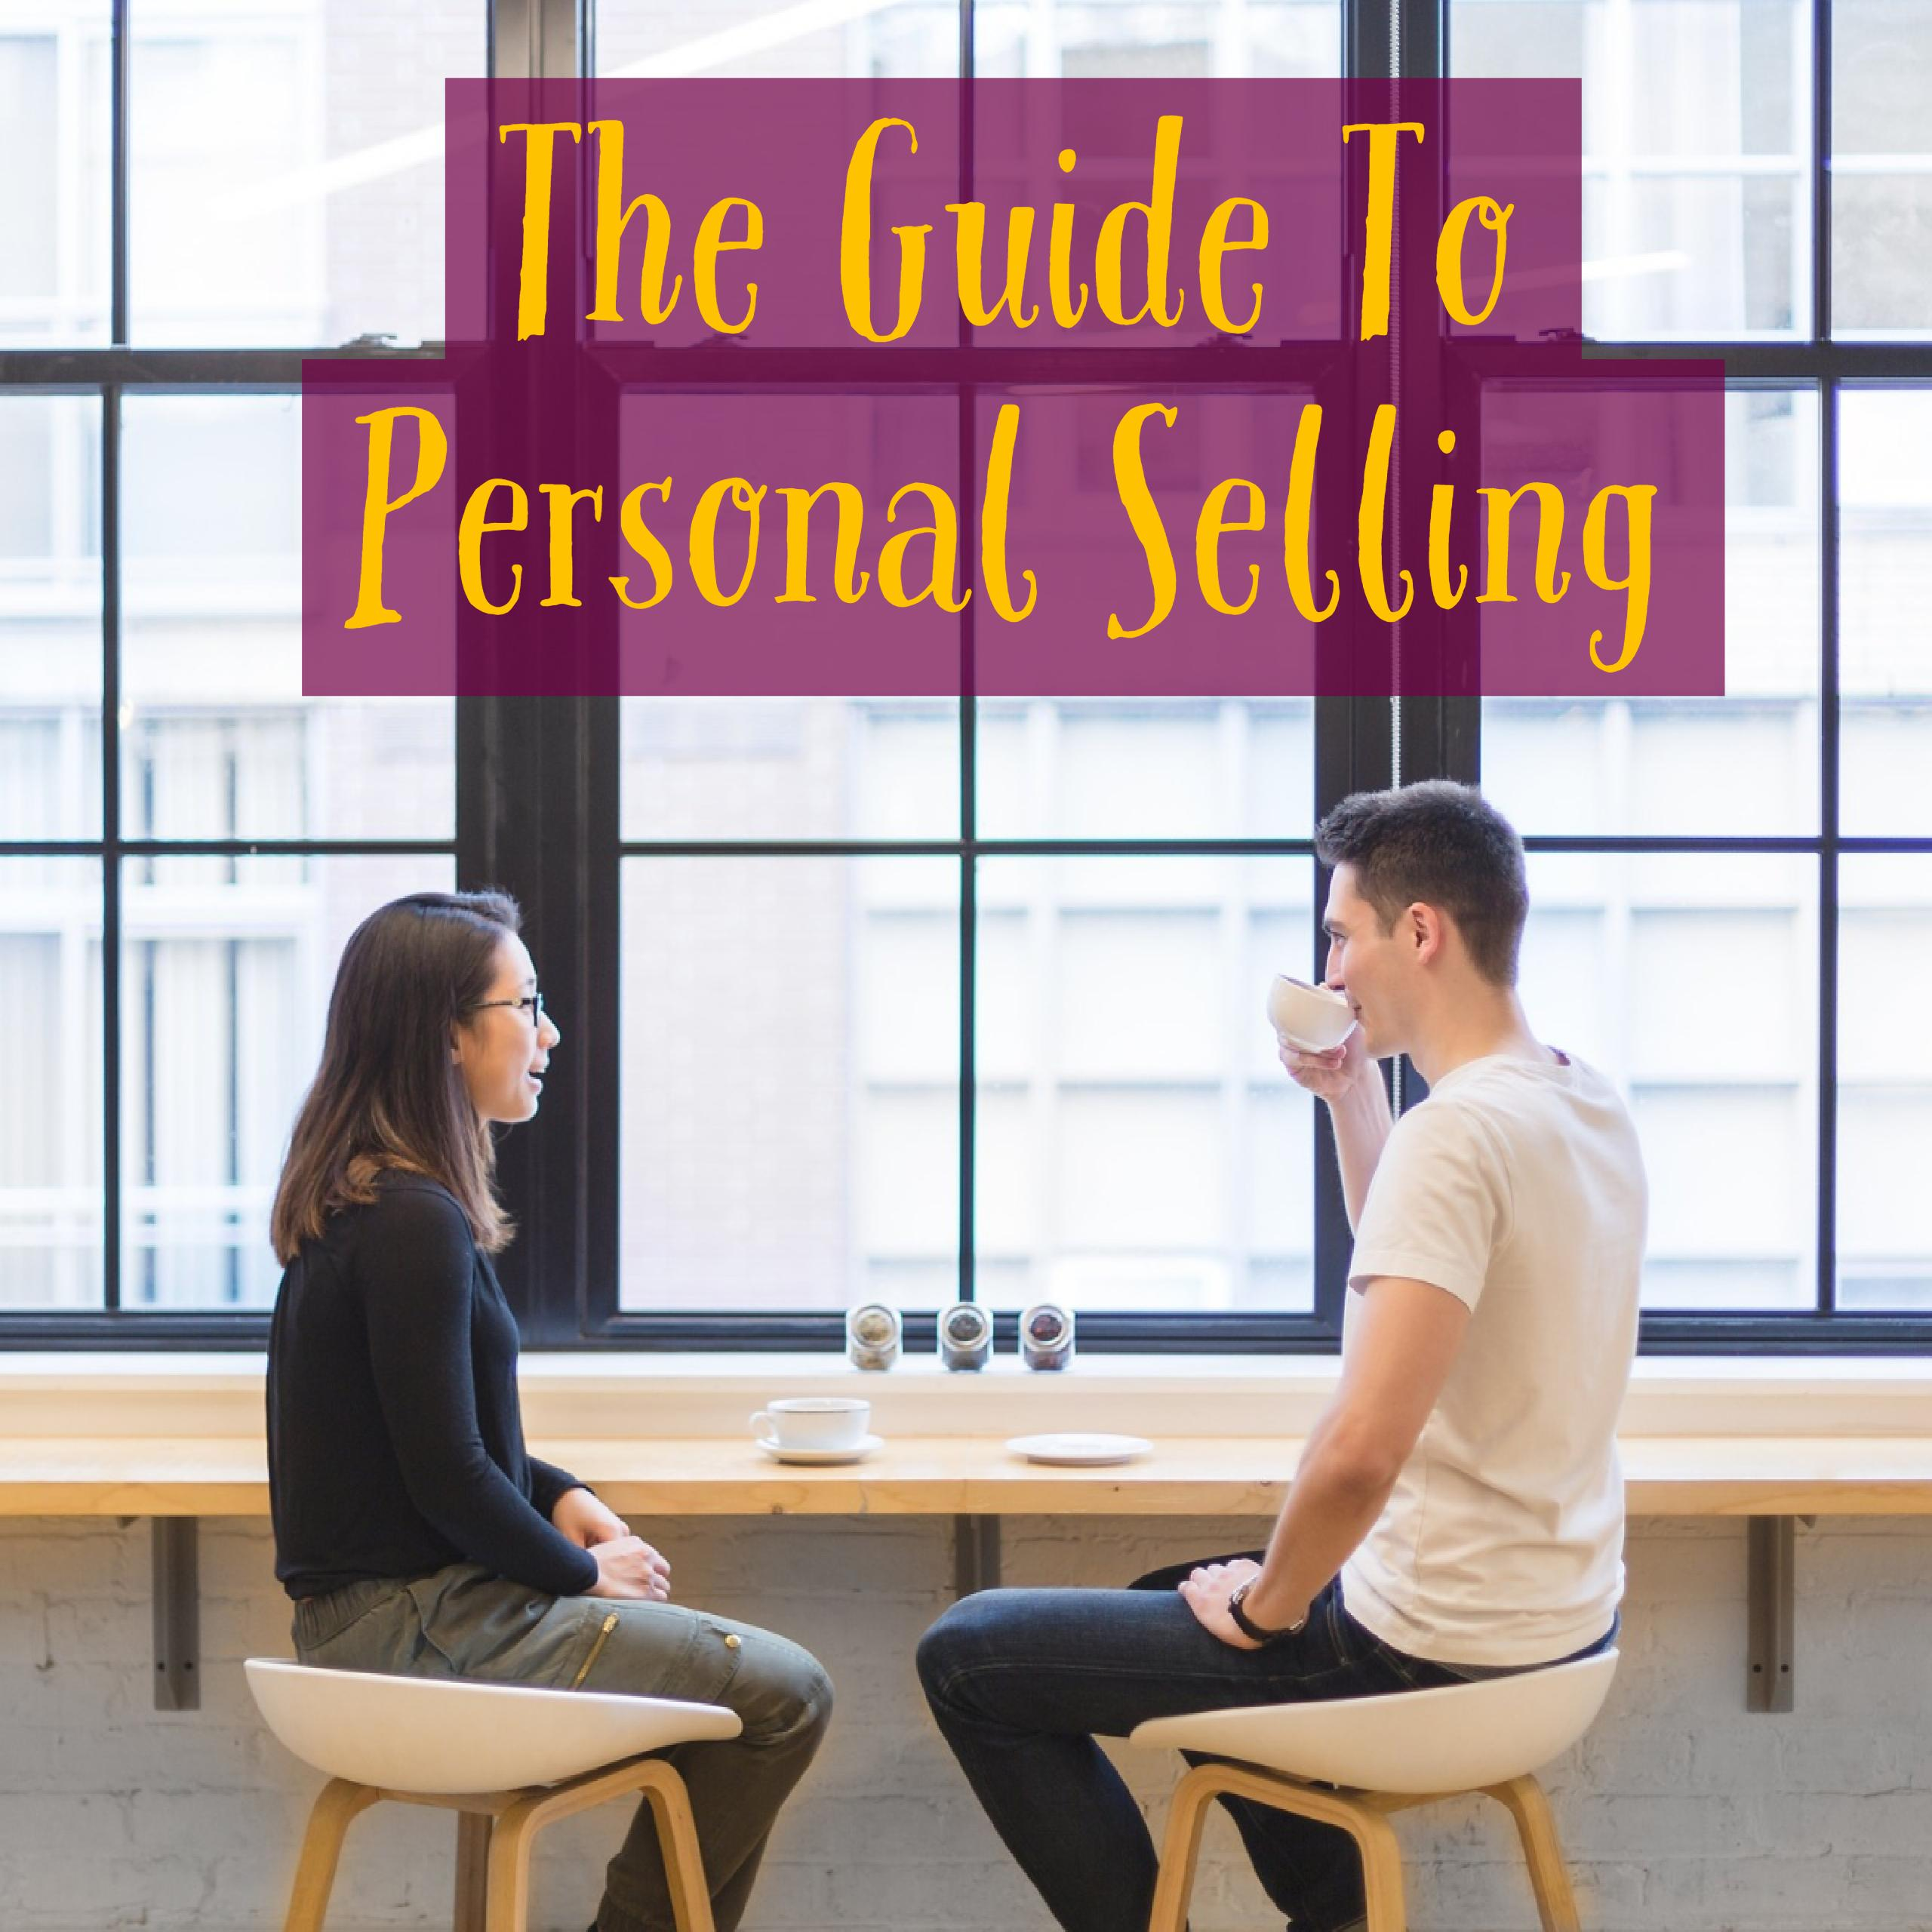 Personal selling  |Personal Selling